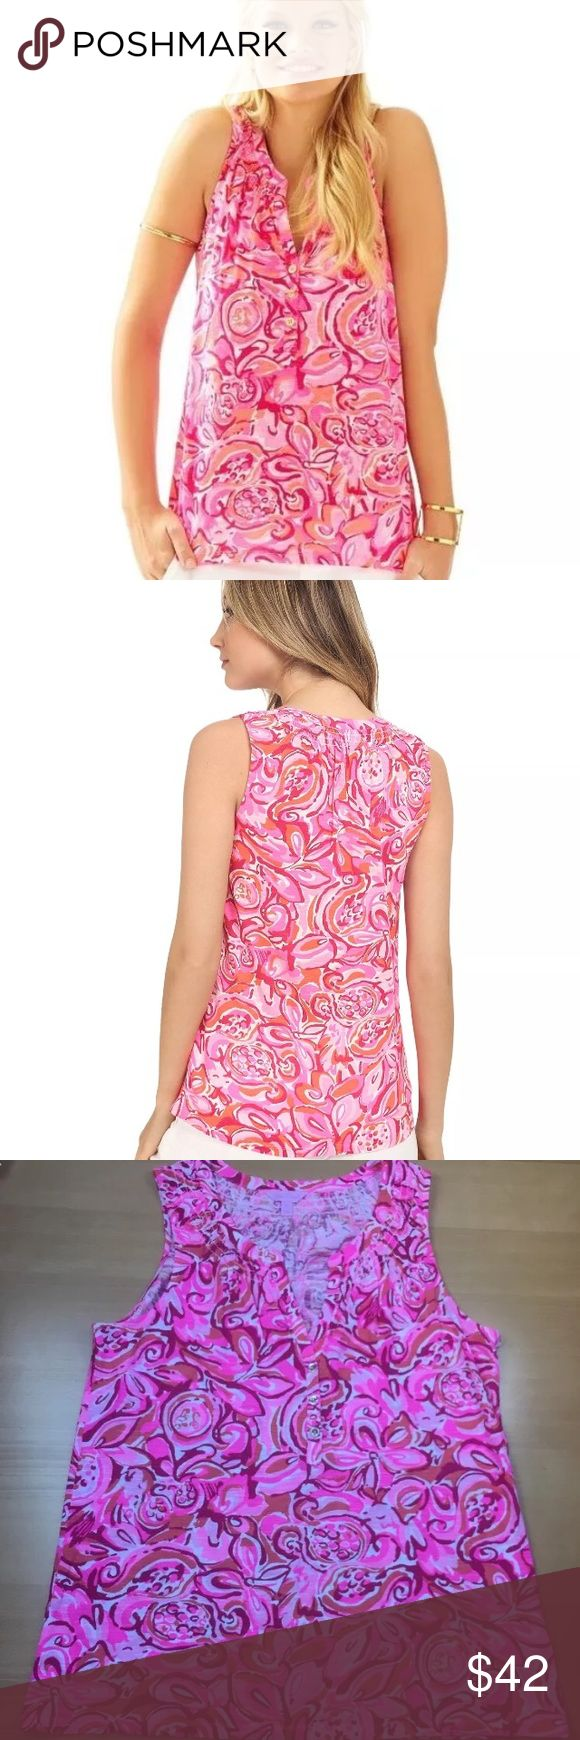 Lilly Pulitzer NWOT Essie Pink Pout Mango Salsa SLEEVELESS ESSIE TOP DESCRIPTION  Love the effortless fit of Elsa? Say hello to Essie! The Essie top is a sleeveless printed top with smocking around the neckline. Wear this cotton tank with white denim and wedges.  Sleeveless Top With Center Front Placket With Gold Button Detail And Smocking Around Neckline. Slubby Cotton Jersey- Printed (100% Cotton). Machine Wash Cold, Delicate Cycle. Imported. Style #: 97864 Lilly Pulitzer Tops Tank Tops